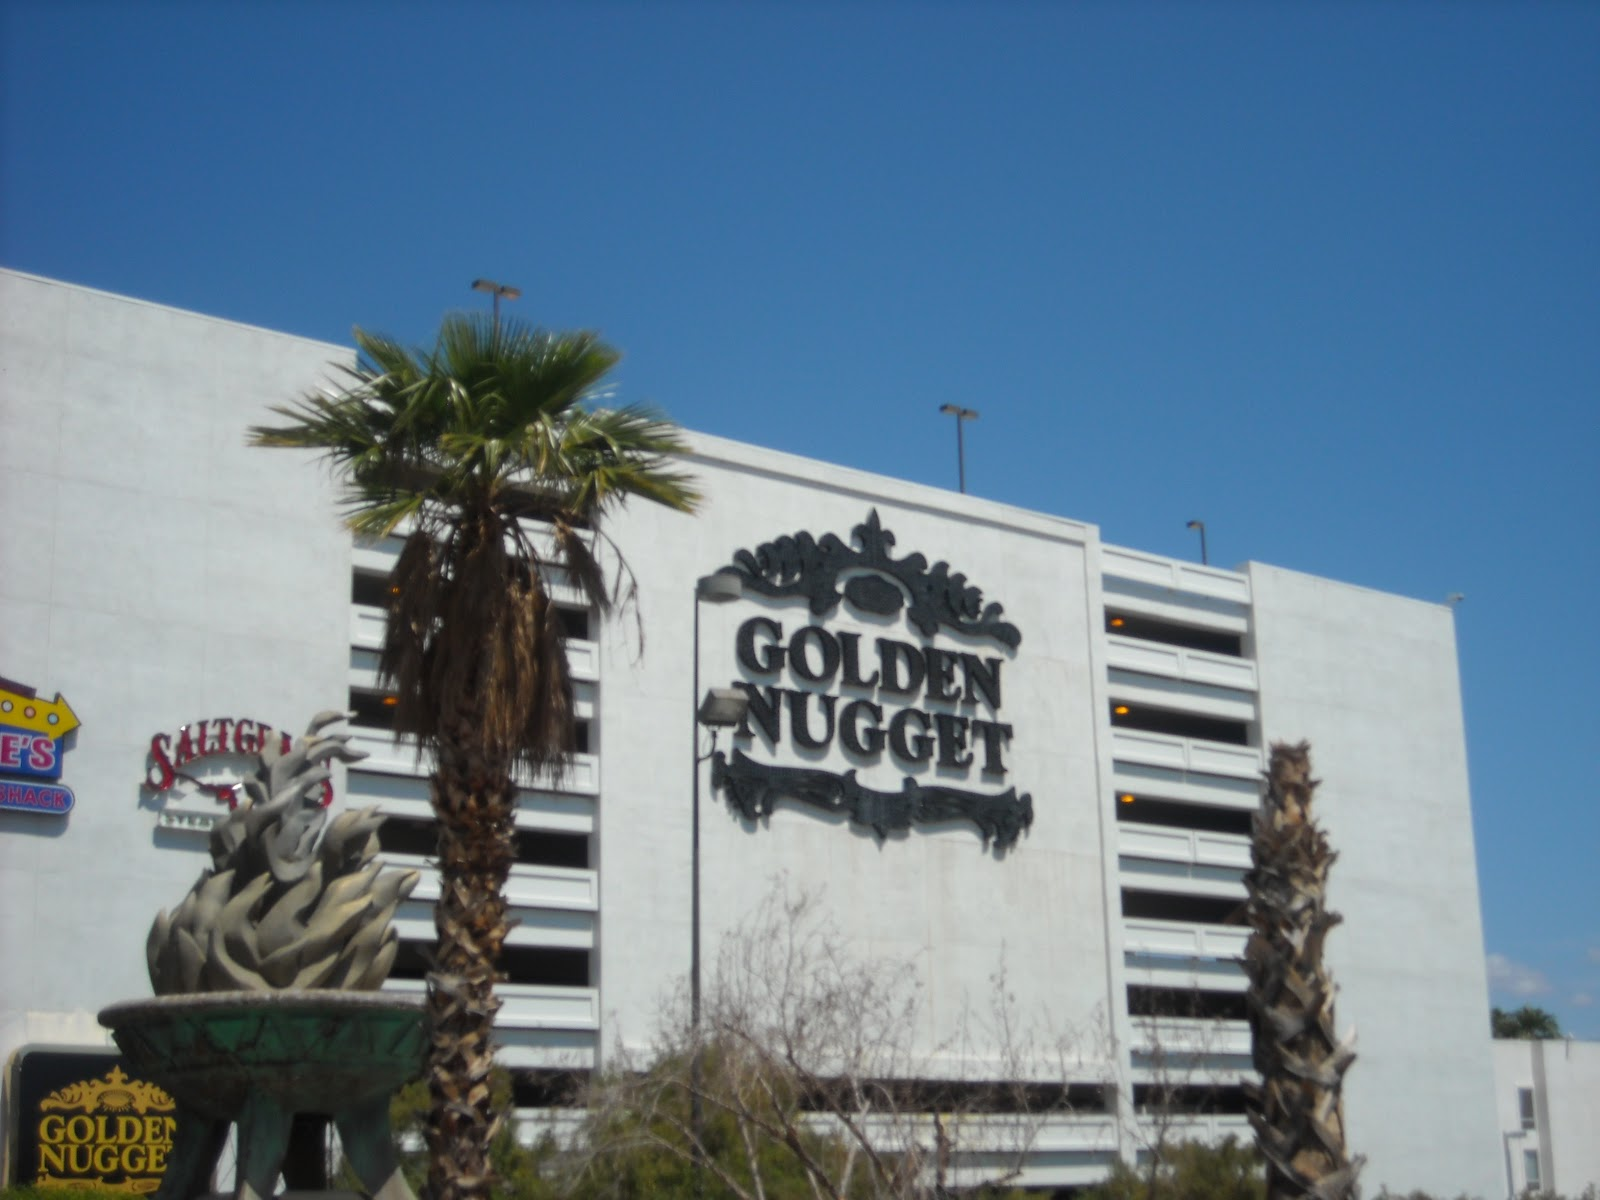 Golden Nugget Laughlin  Laughlin NV  Yelp